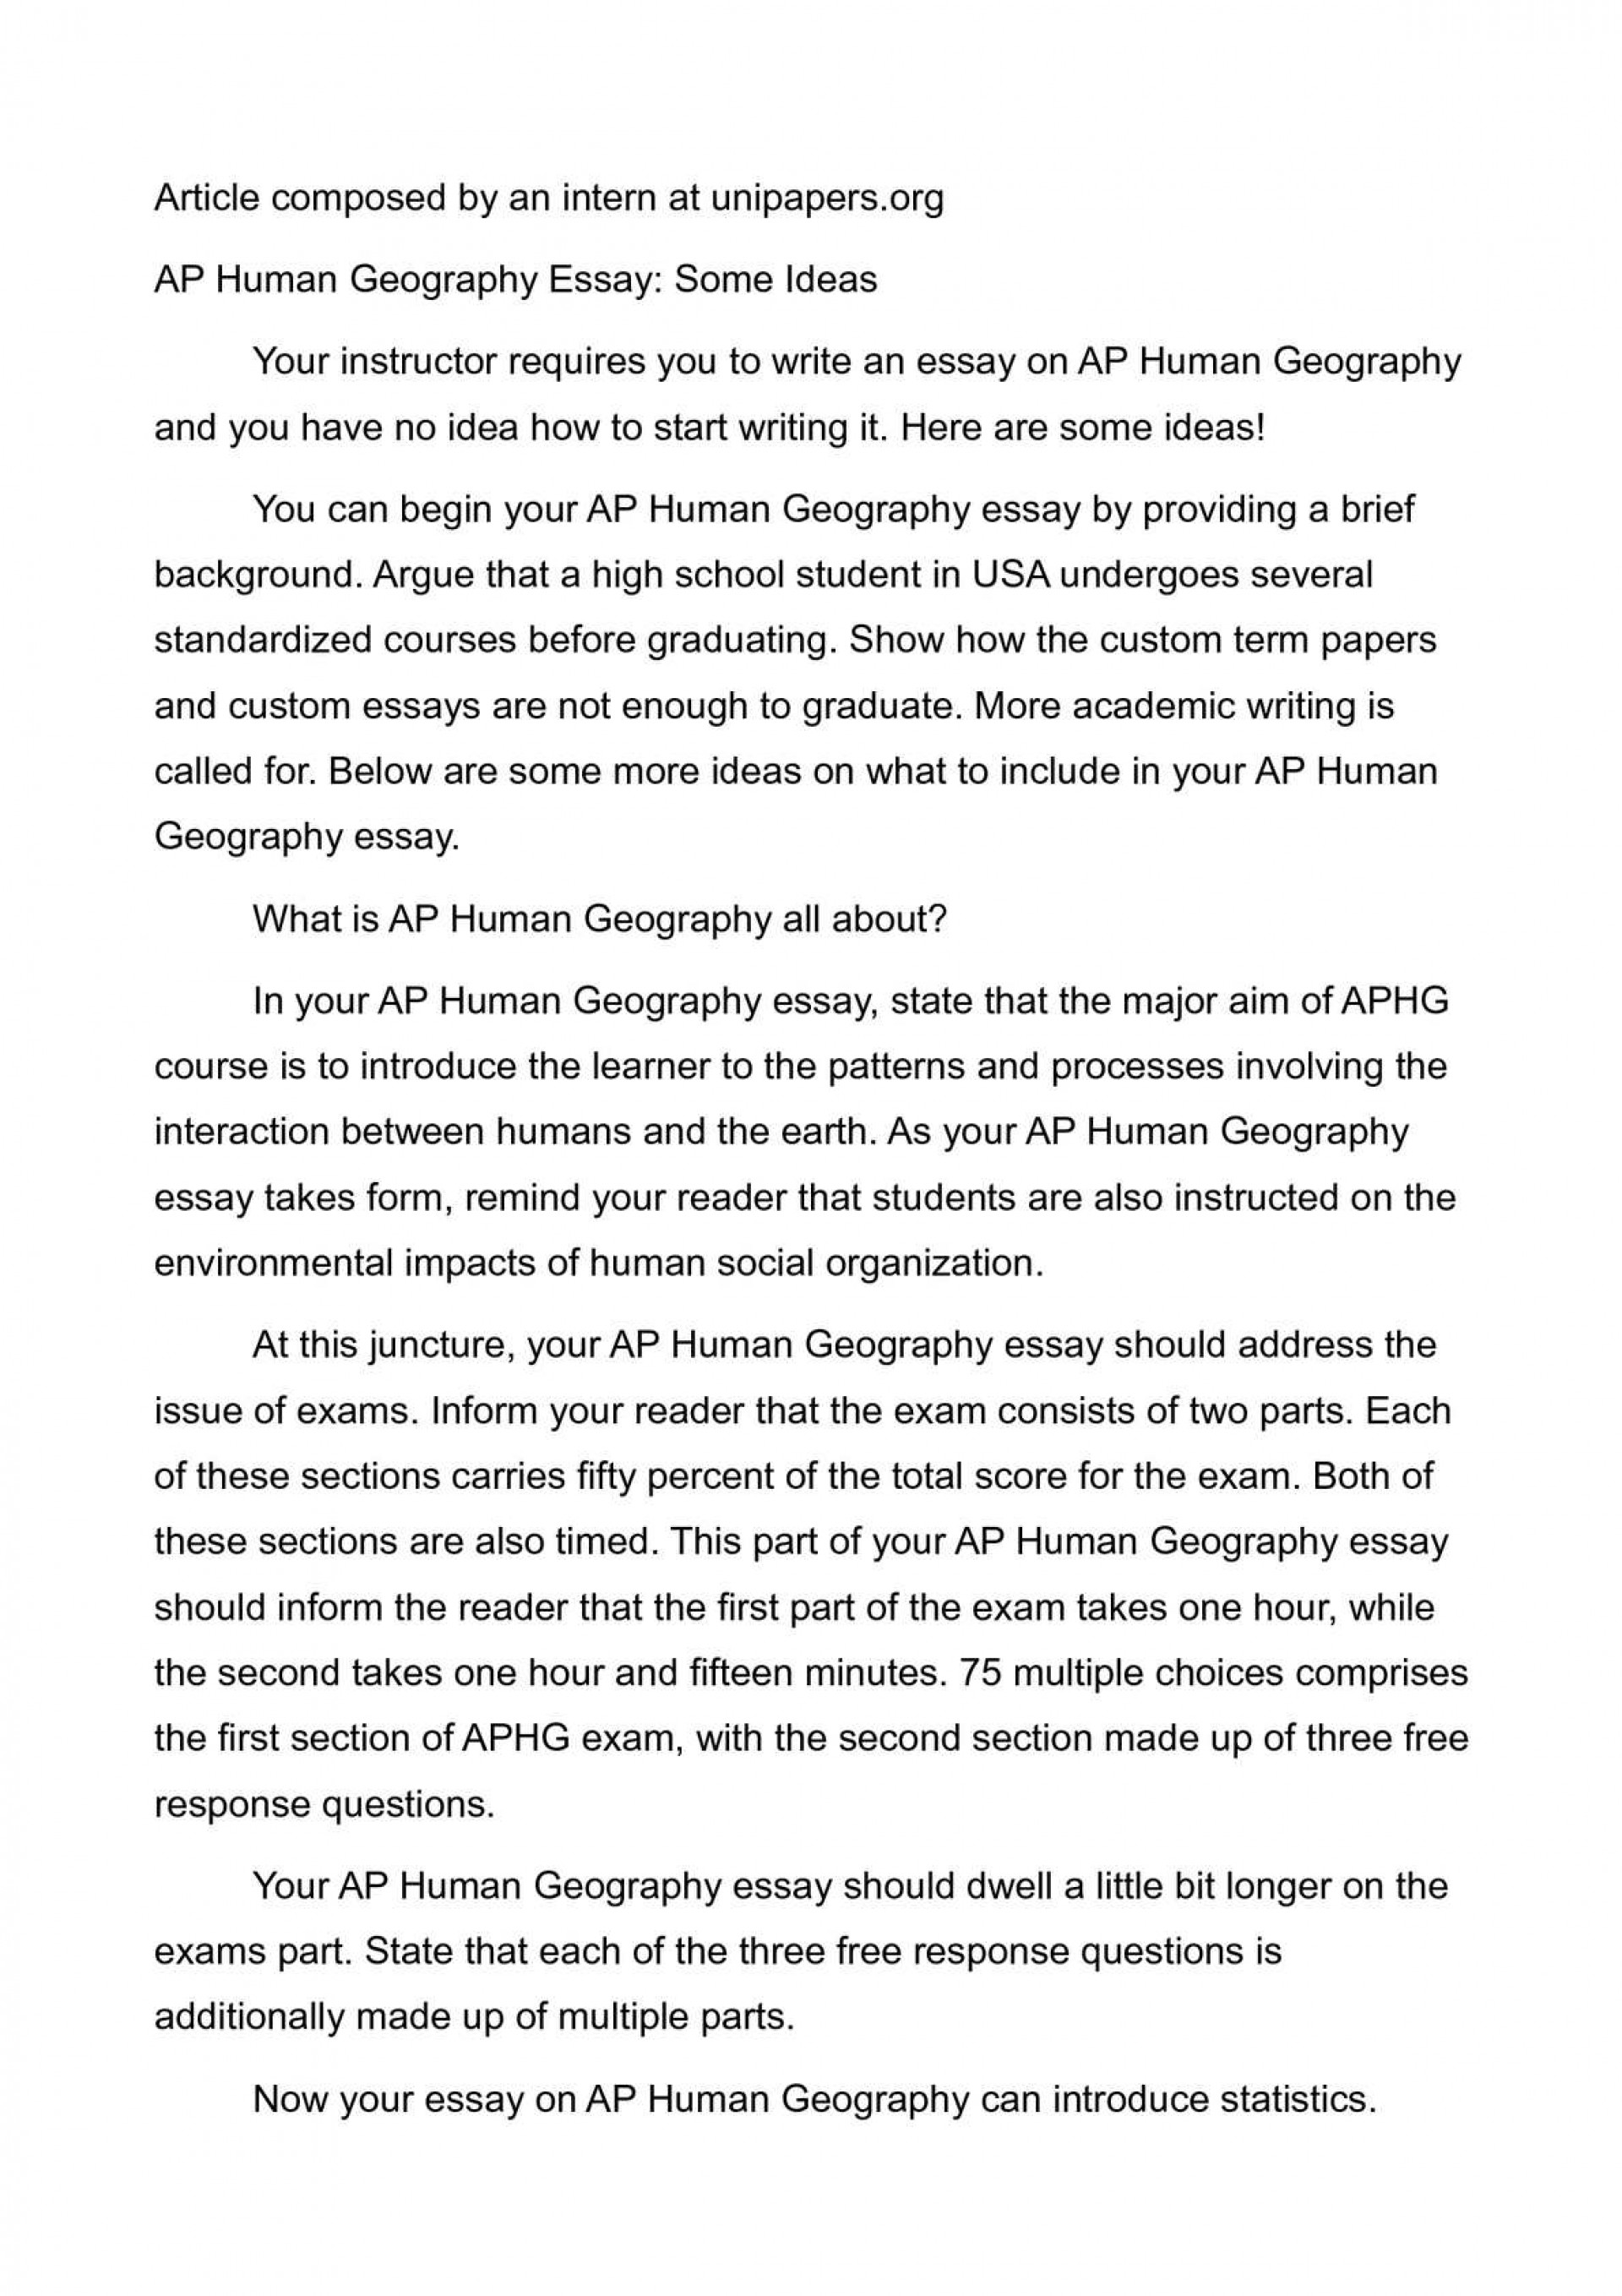 006 P1 Human Geography Essays Stunning Essay Examples Ap Free Response 1920